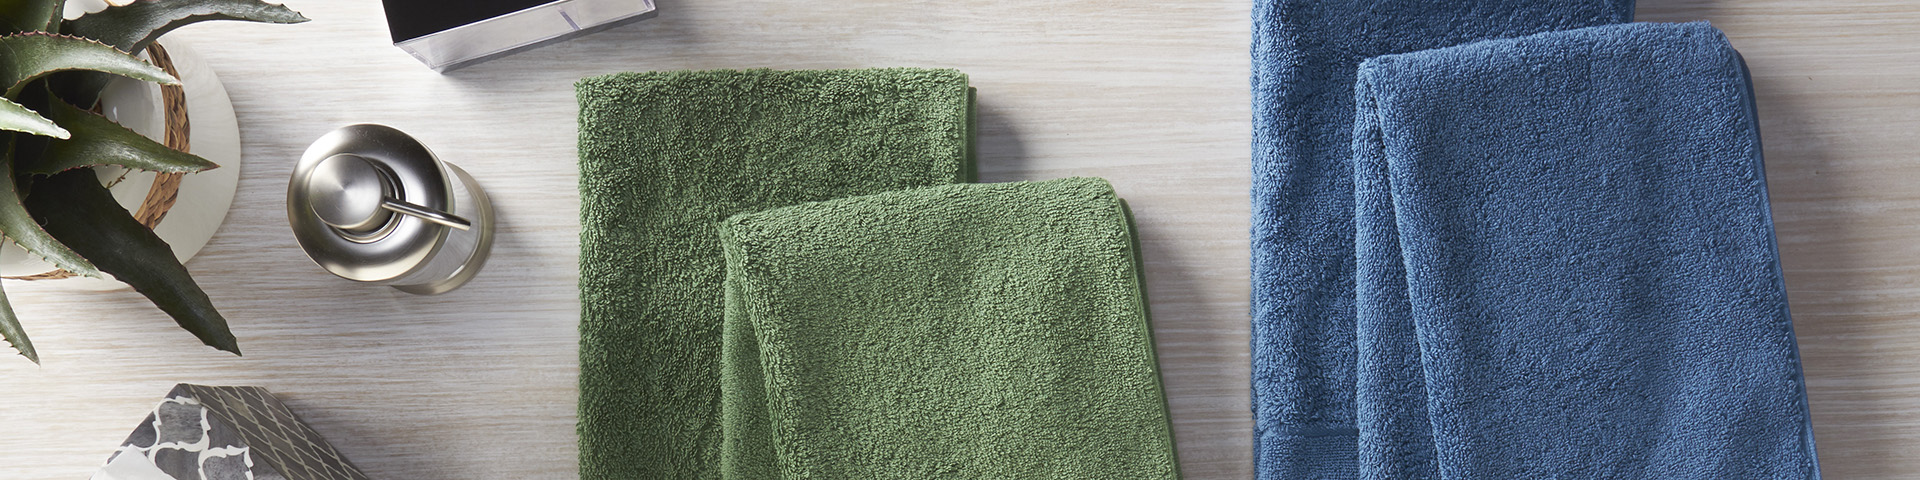 Towels_WebBanner